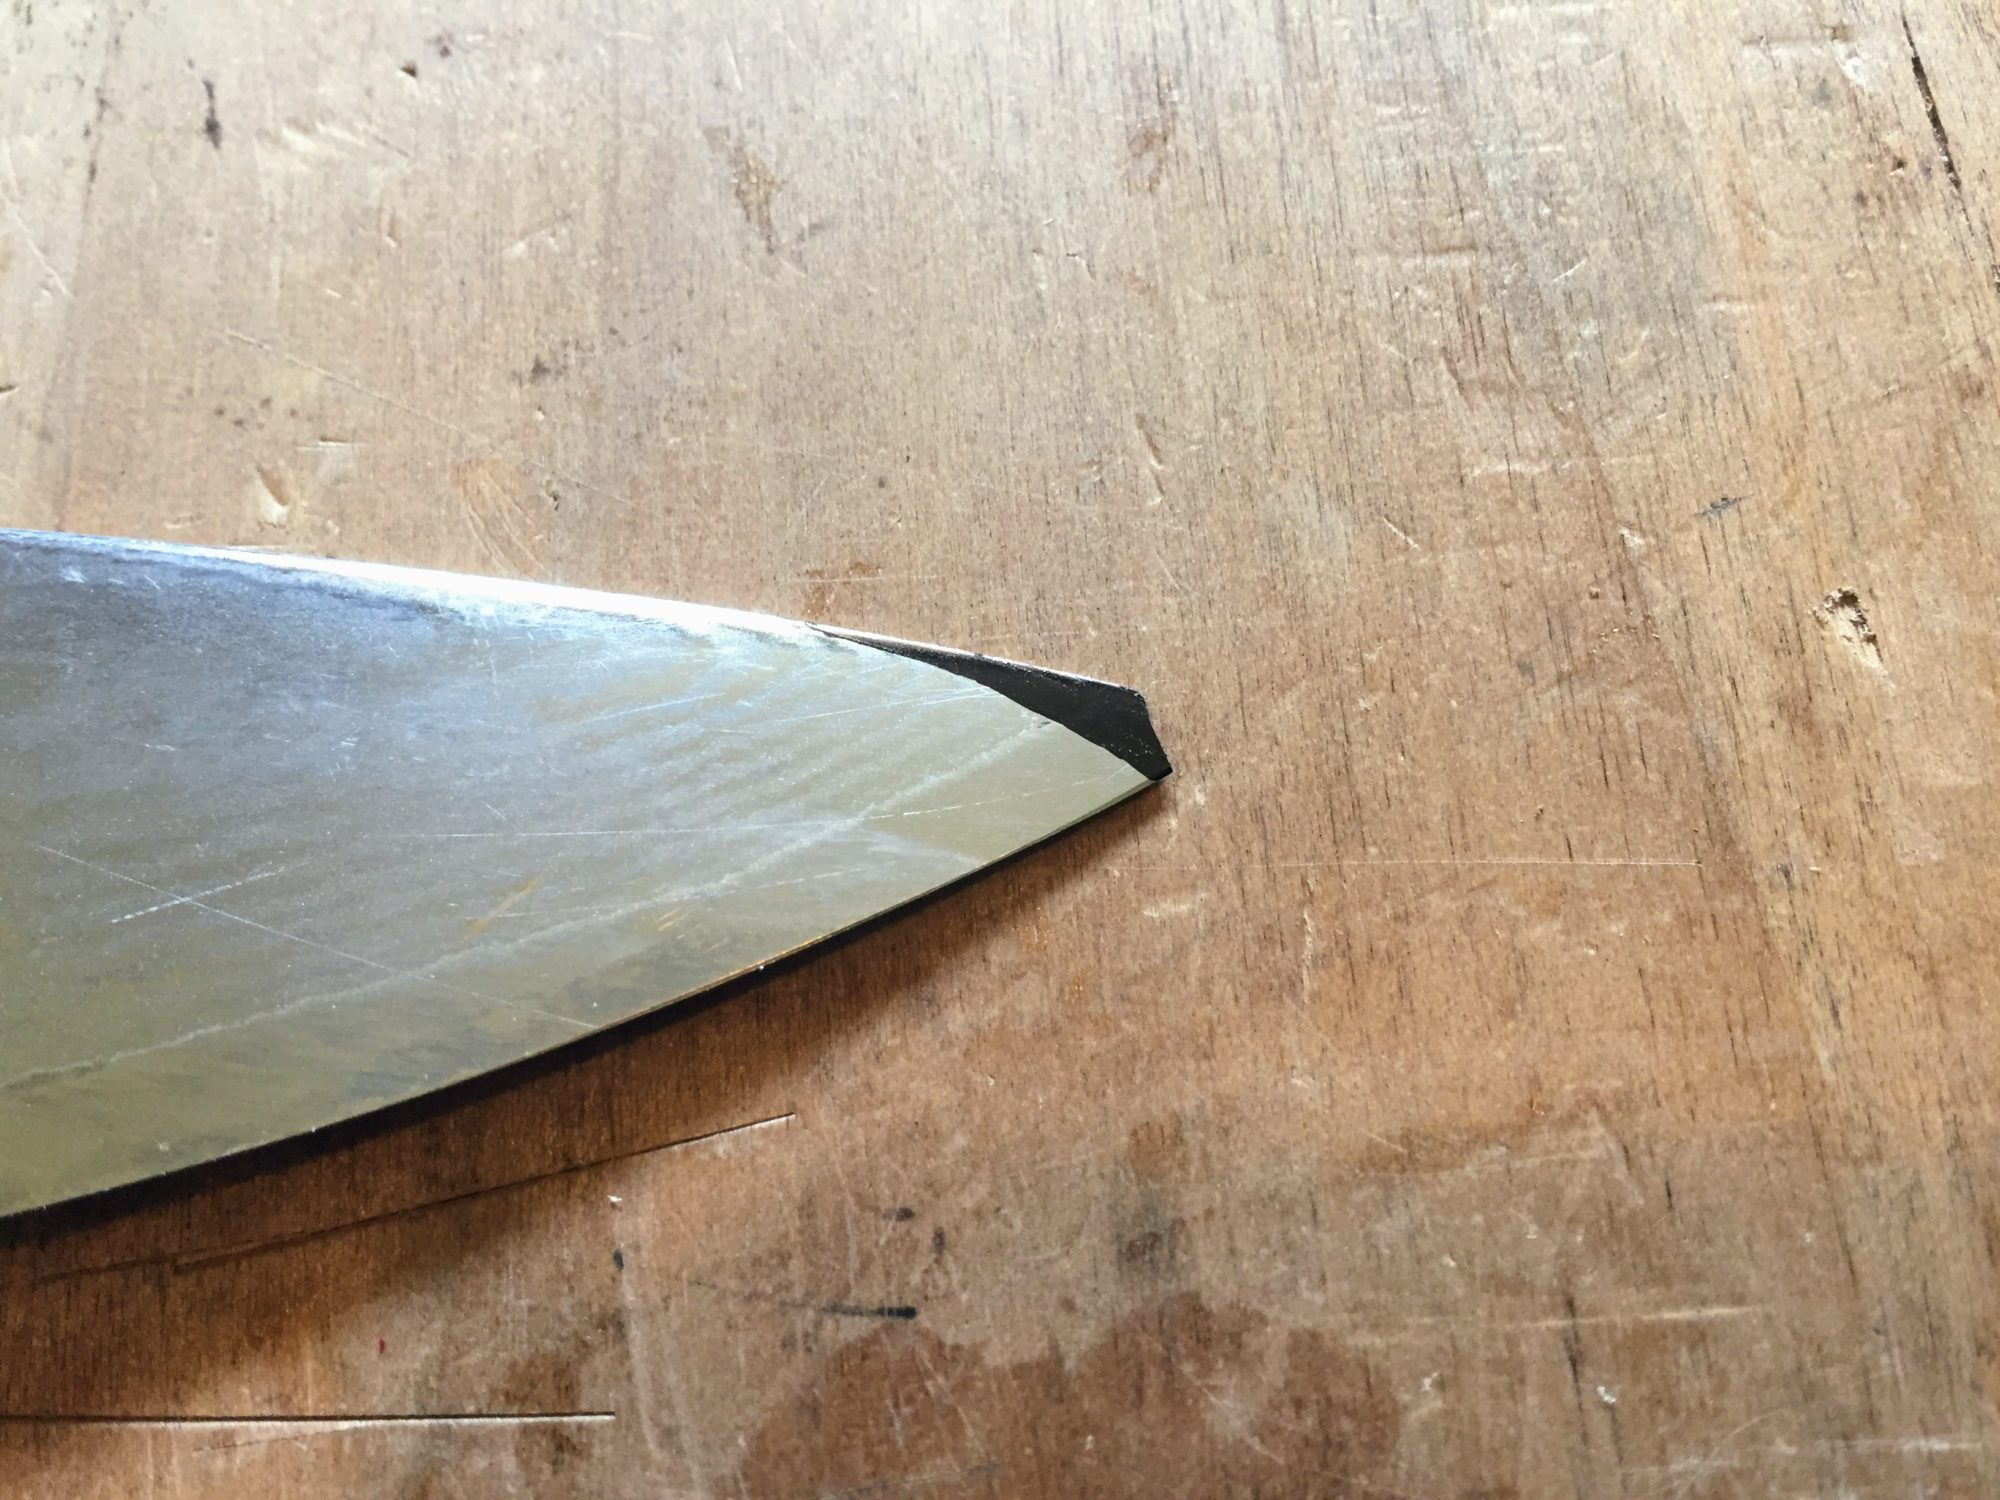 Chef knife with broken tip